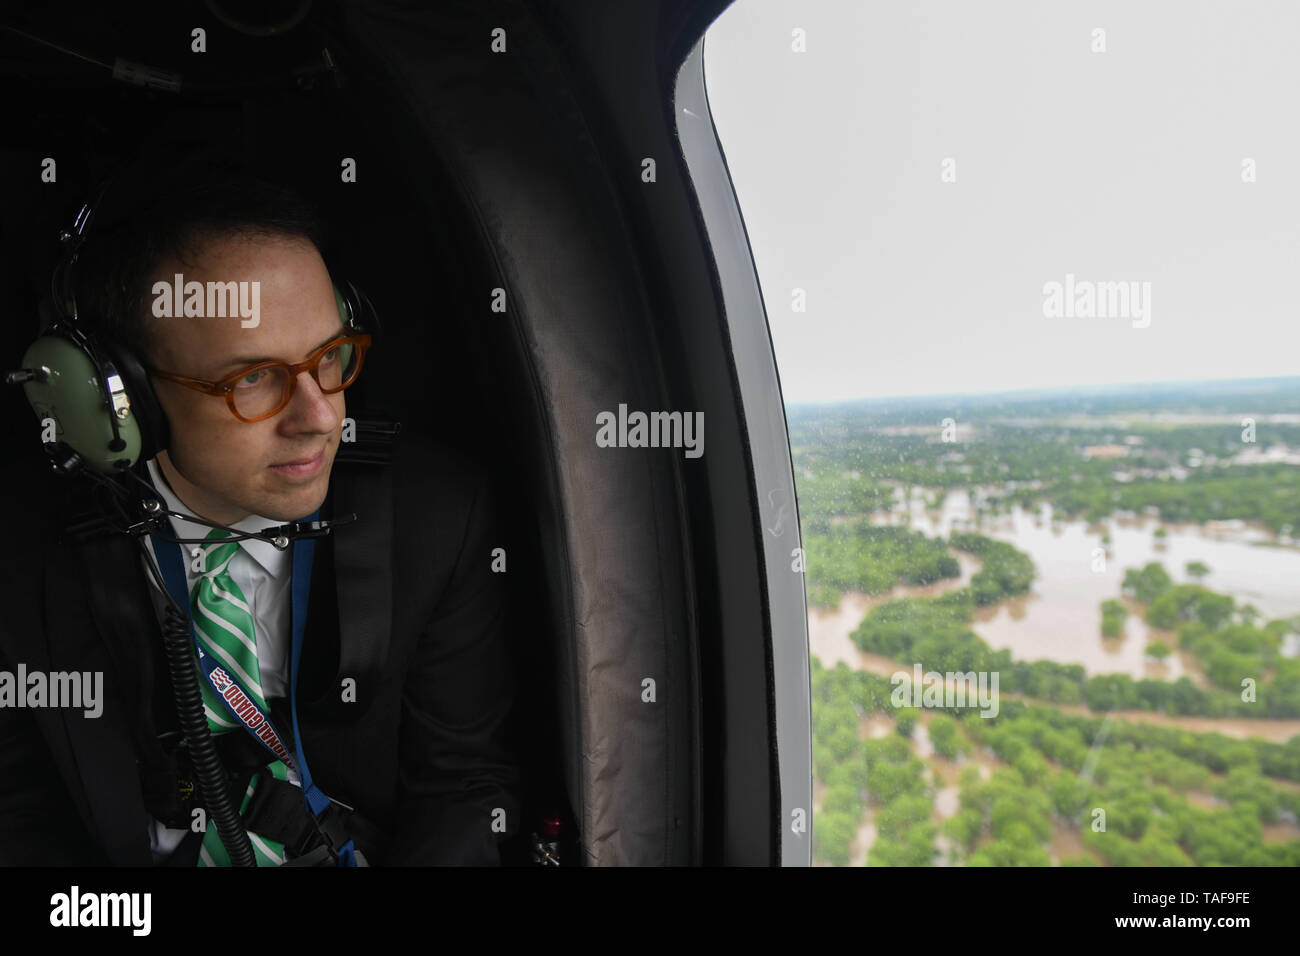 Tulsa Mayor G.T. Bynum inspects the flooding around his city from onboard an Air Force Black Hawk helicopter May 22, 2019 in Tulsa, Oklahoma. More than 1000 homes have been effected by the floods brought by extreme rain accompanied by tornados. - Stock Image